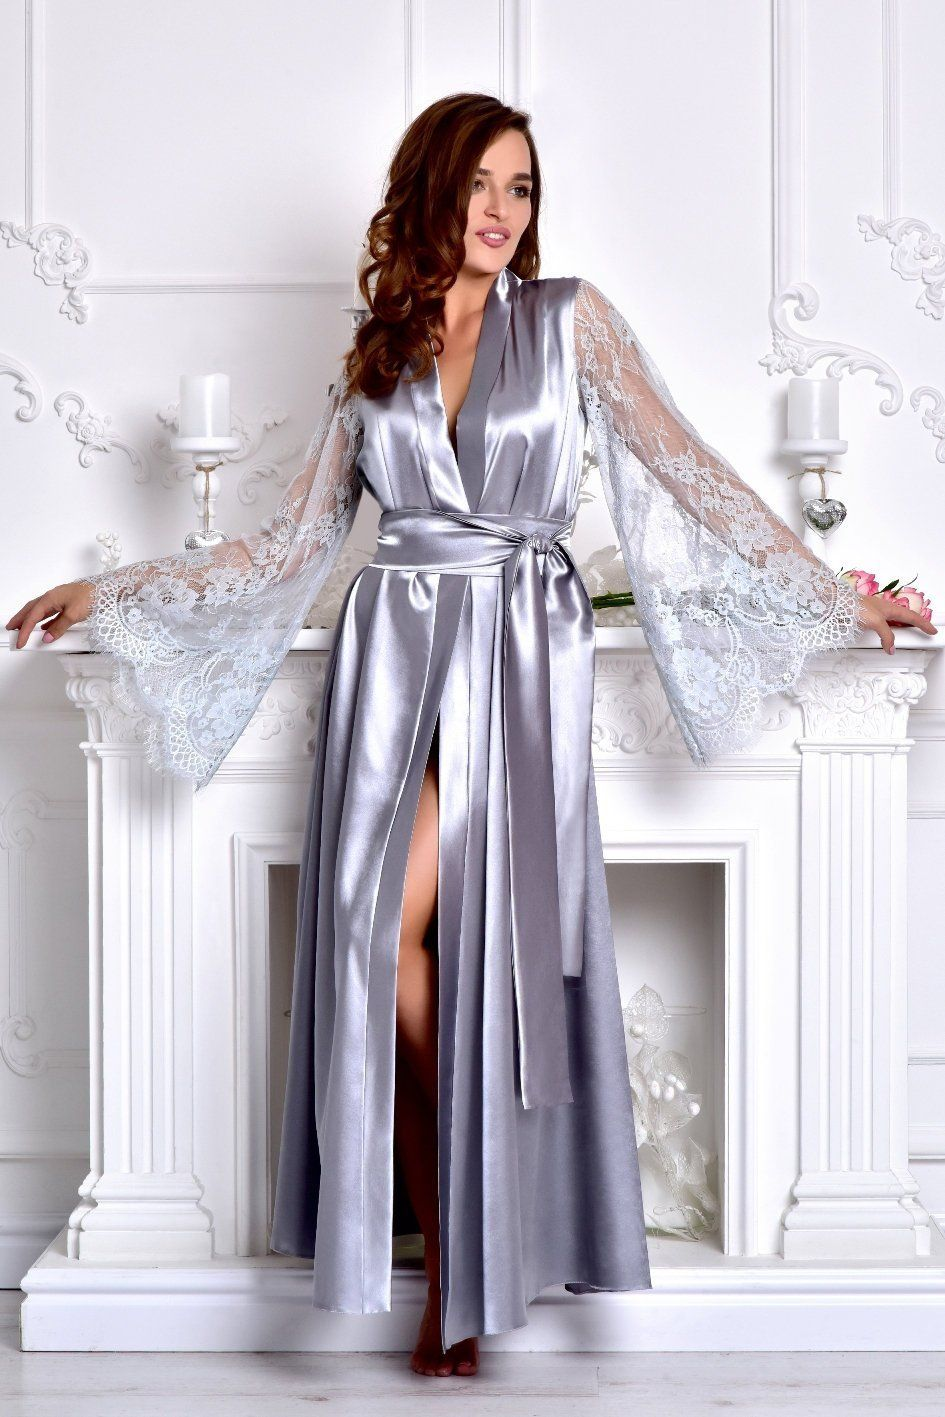 Excited to share the latest addition to my  etsy shop  Gray long bridal robe 18730a44da